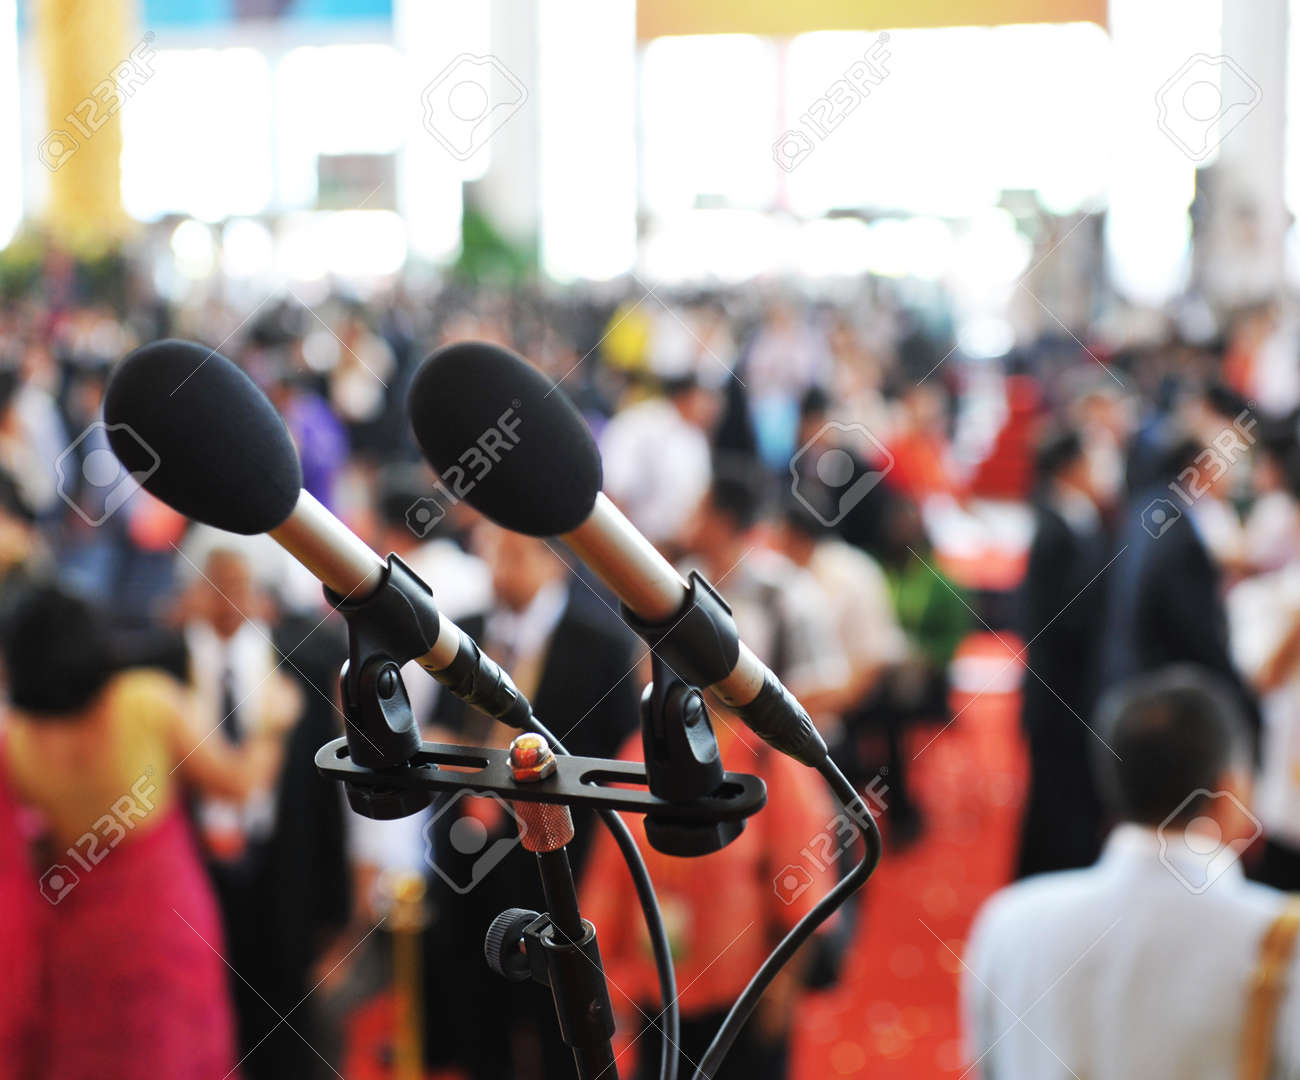 Closeup microphone in auditorium with people. Stock Photo - 13602268